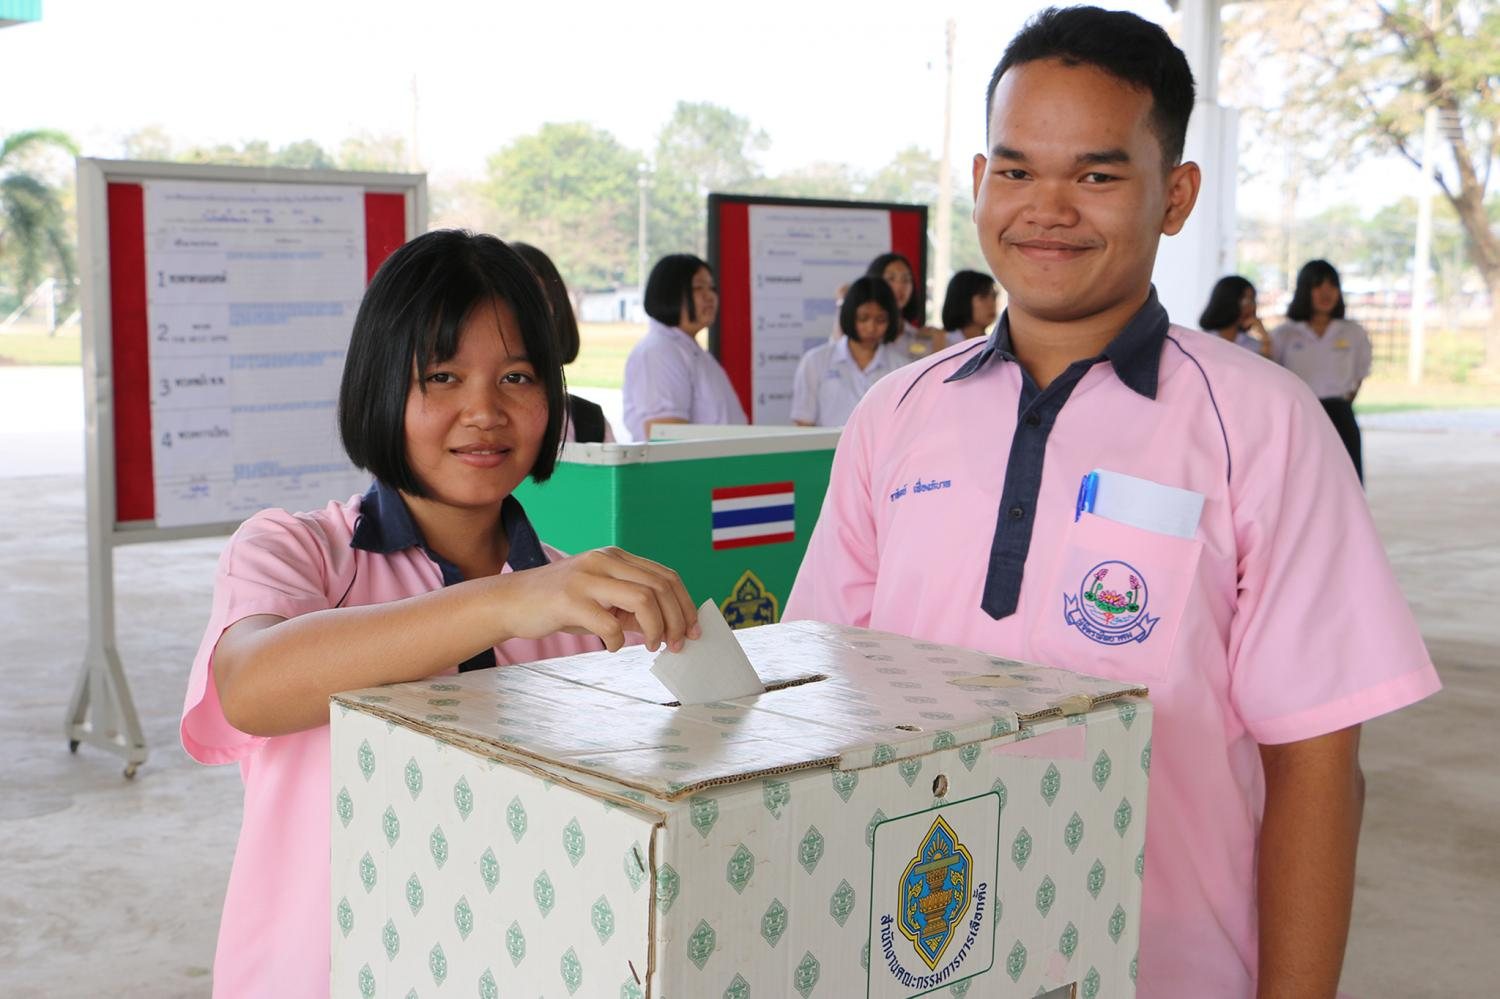 Participatory democracy: A way forward for Thais